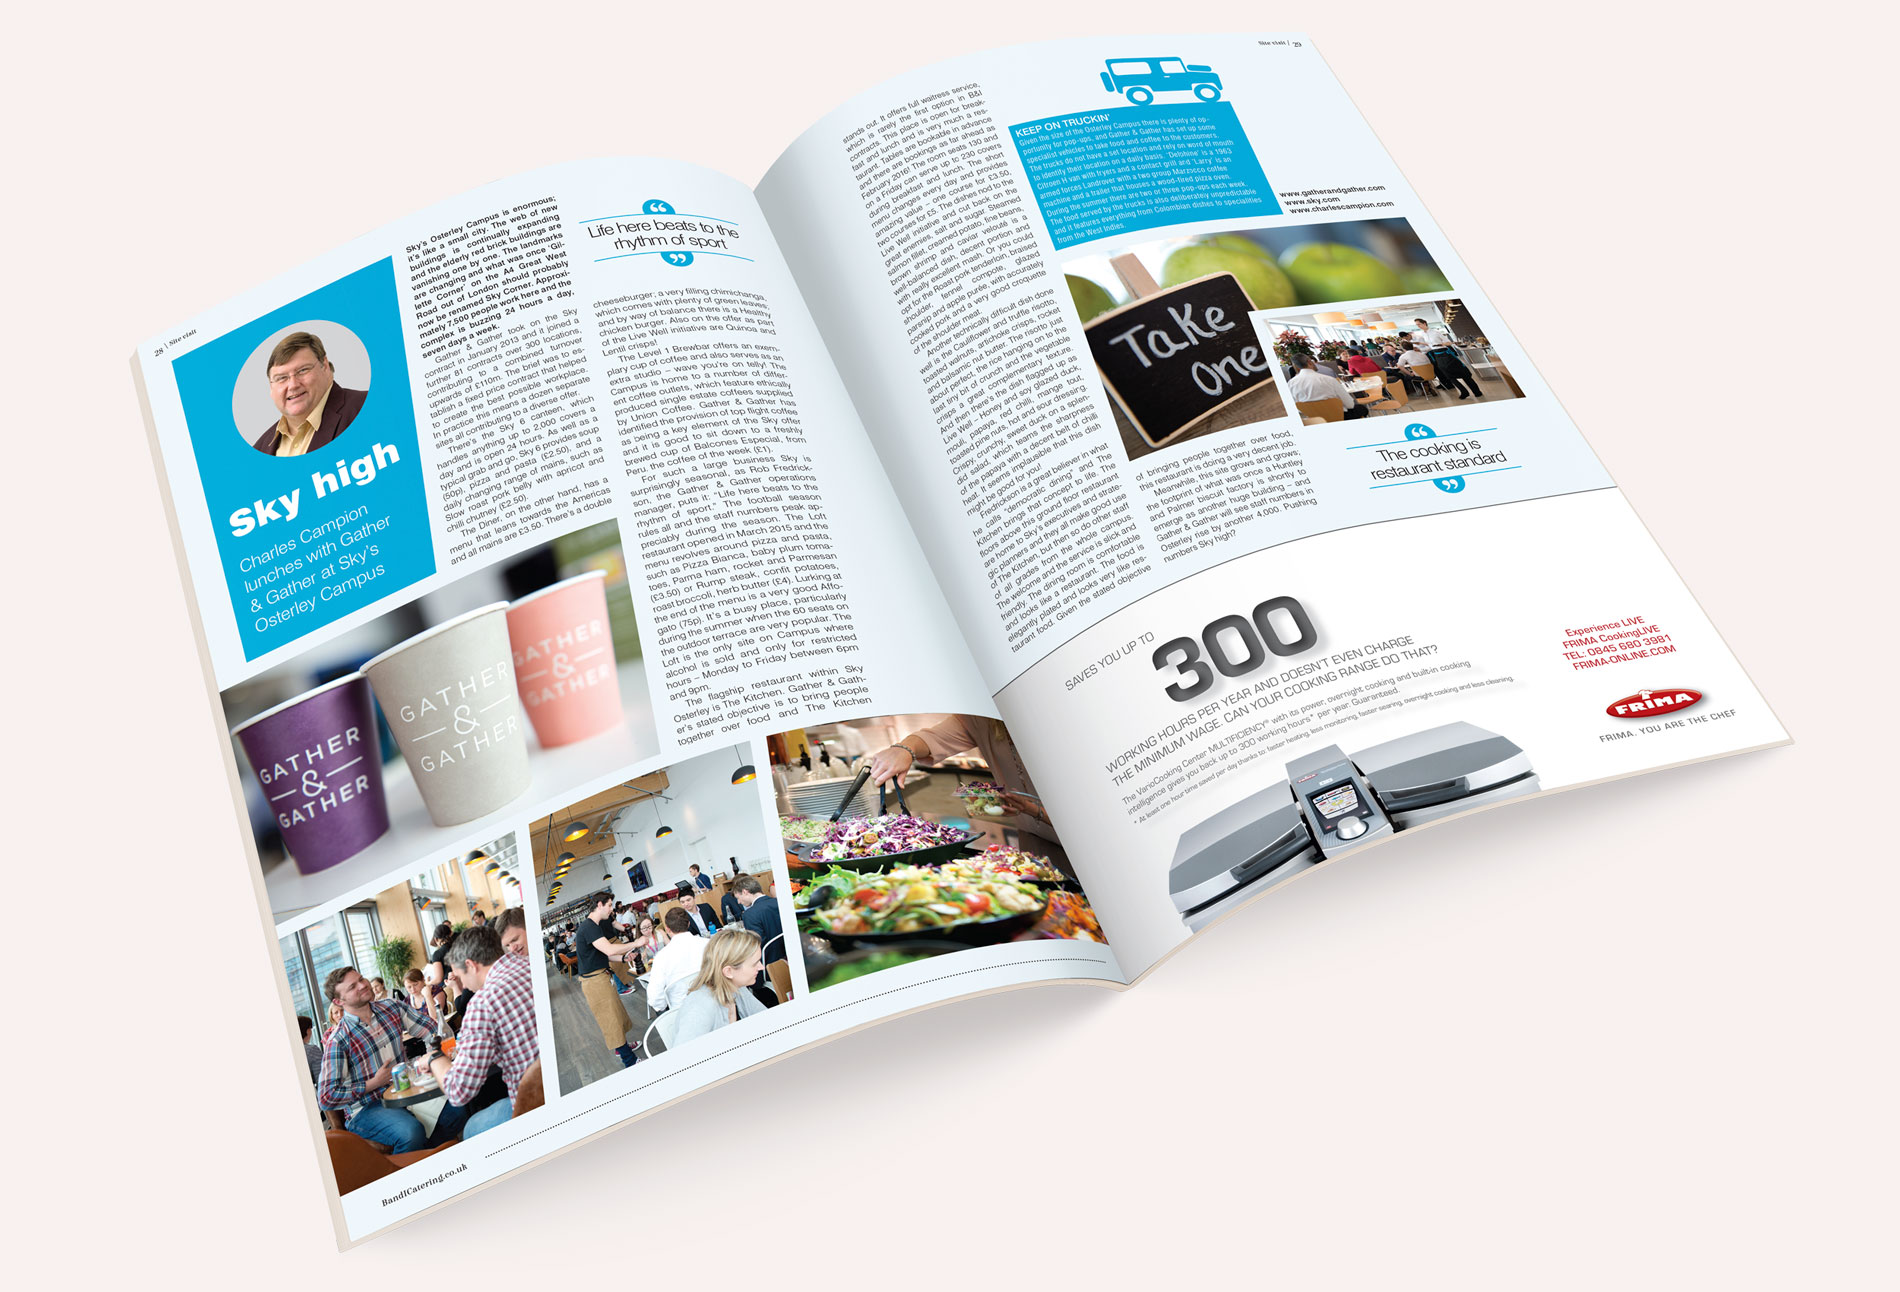 Charles Campion Bandicatering B&I catering magazine spread snack attack - design whitstable kent